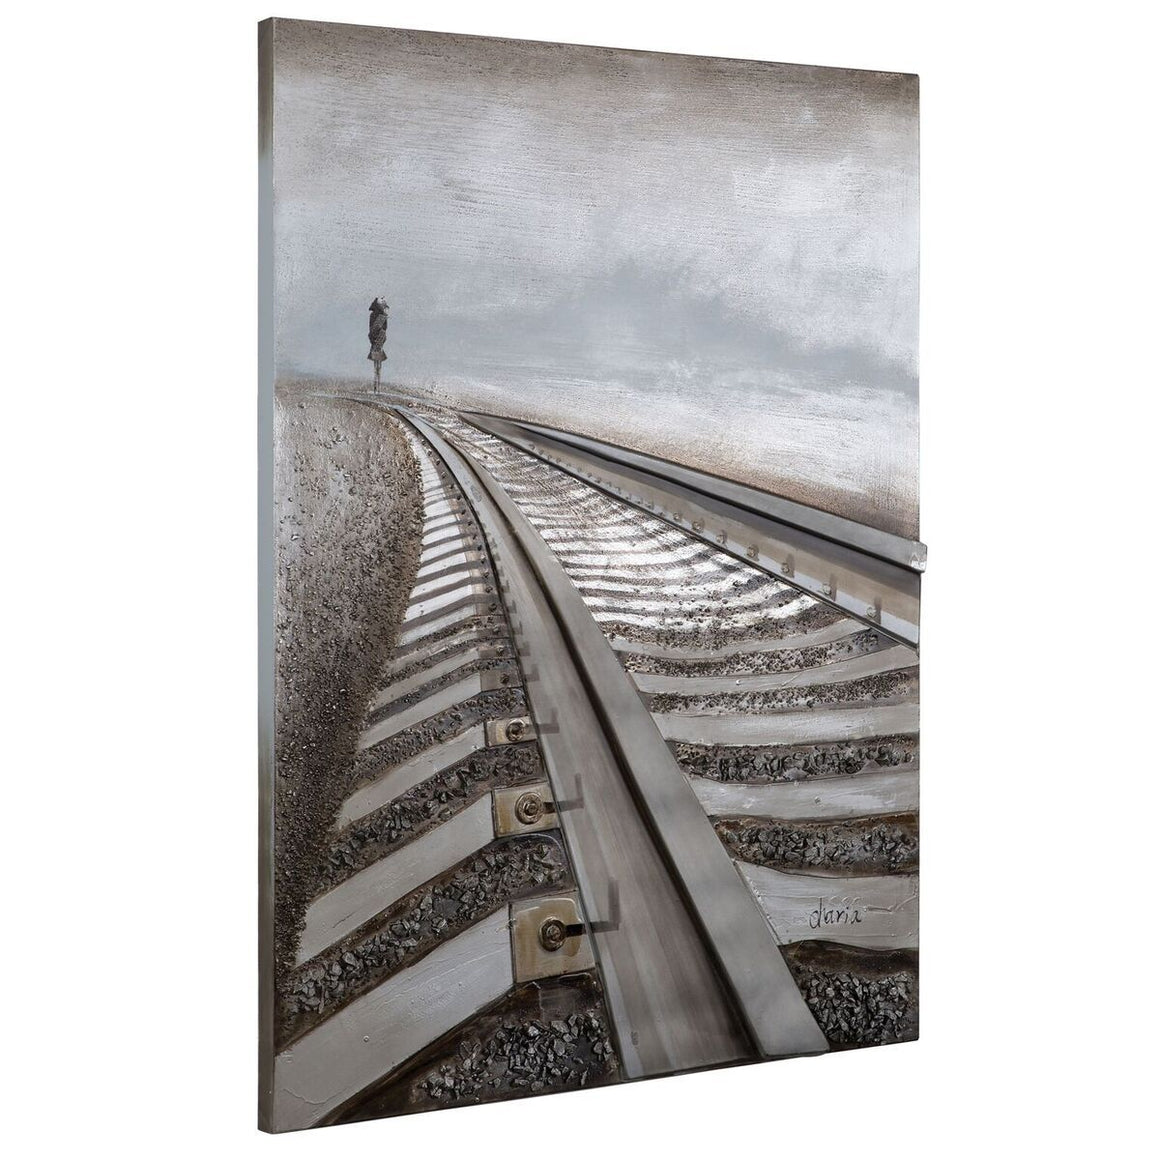 "Destination Anywhere 3D Railroad Wall Art 48"" Tall-Rustic Deco Incorporated"